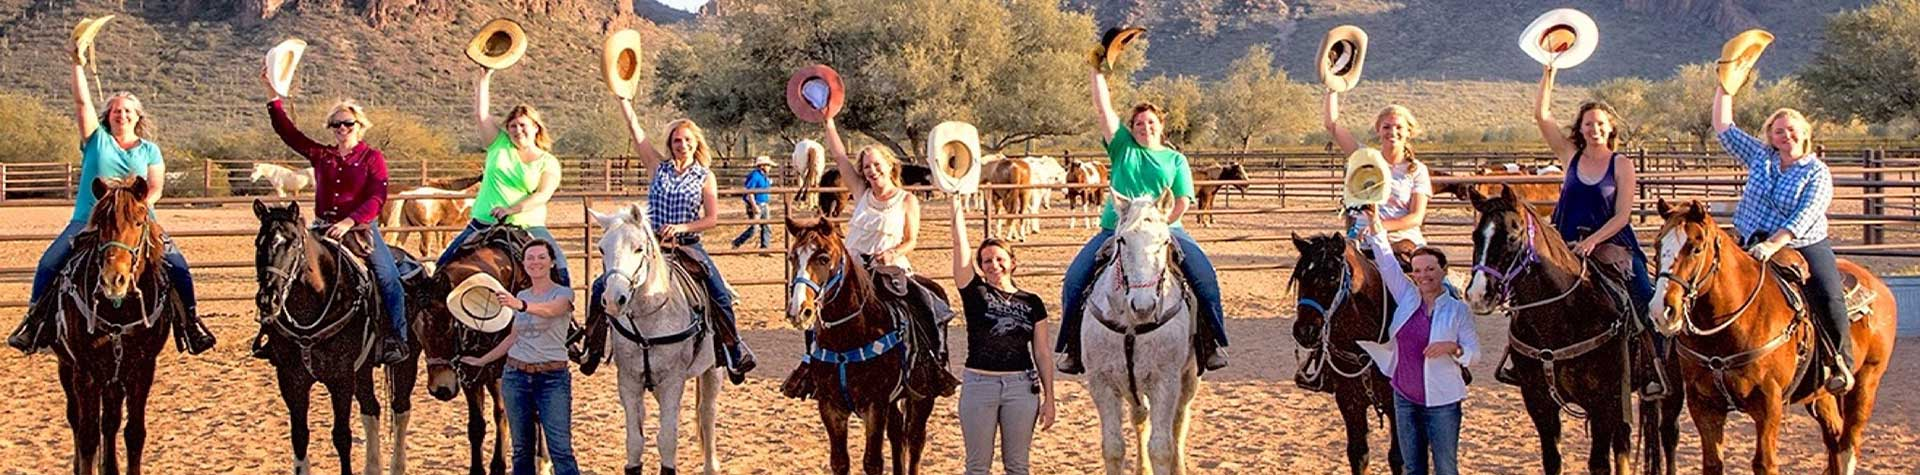 Dude Ranch Events